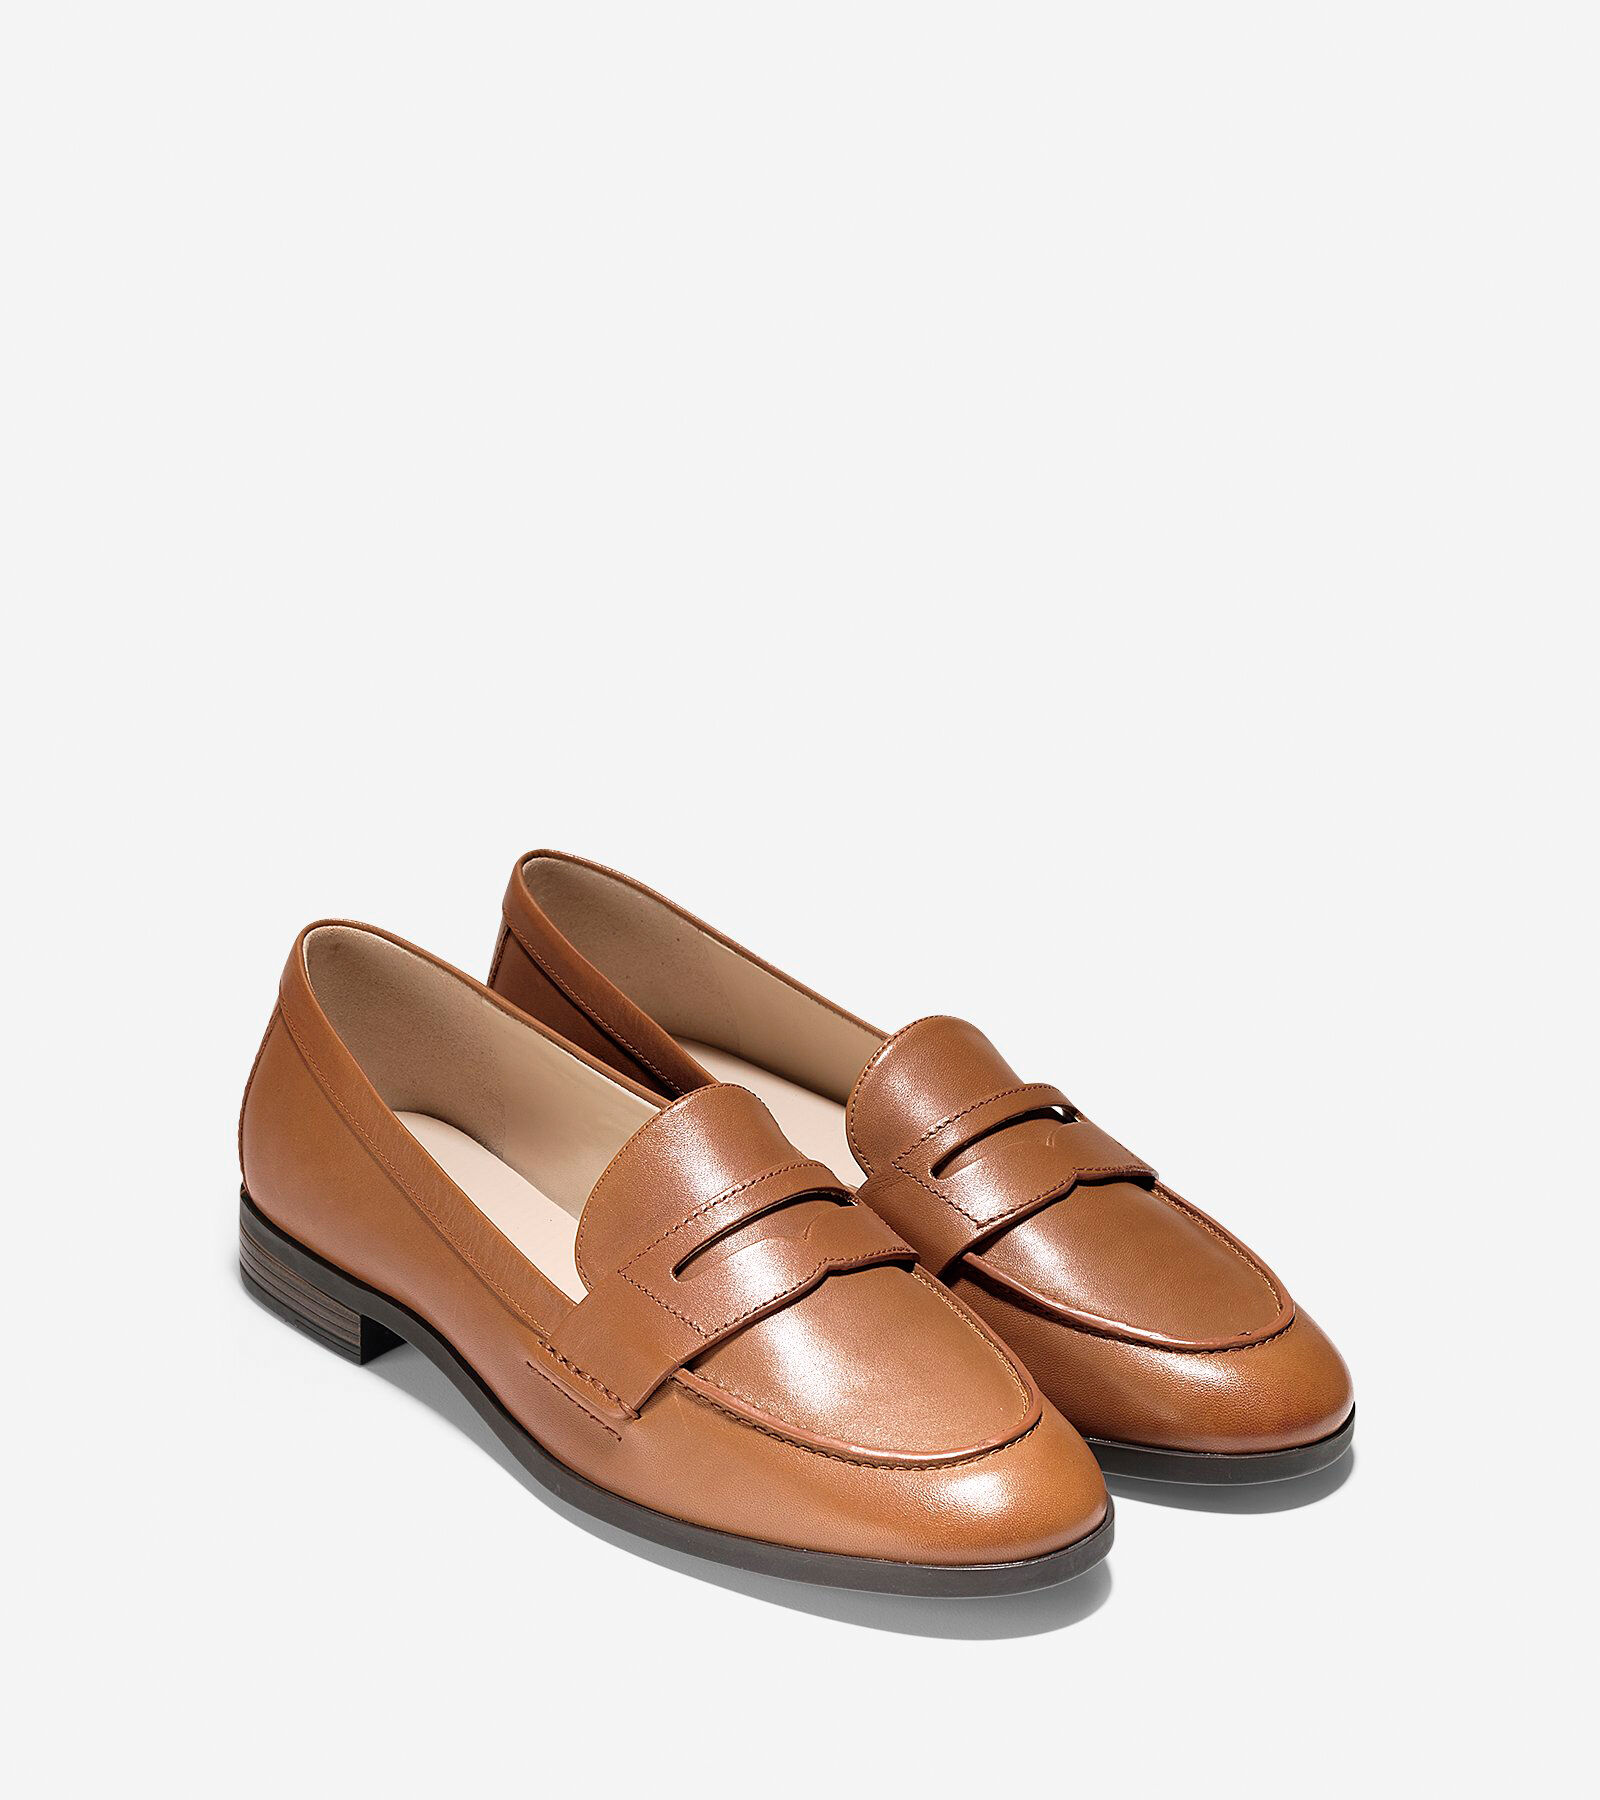 c7618d597fc Womens pinch grand penny loafers in british tan cole haan jpg 2000x2250 Tan  womens loafers